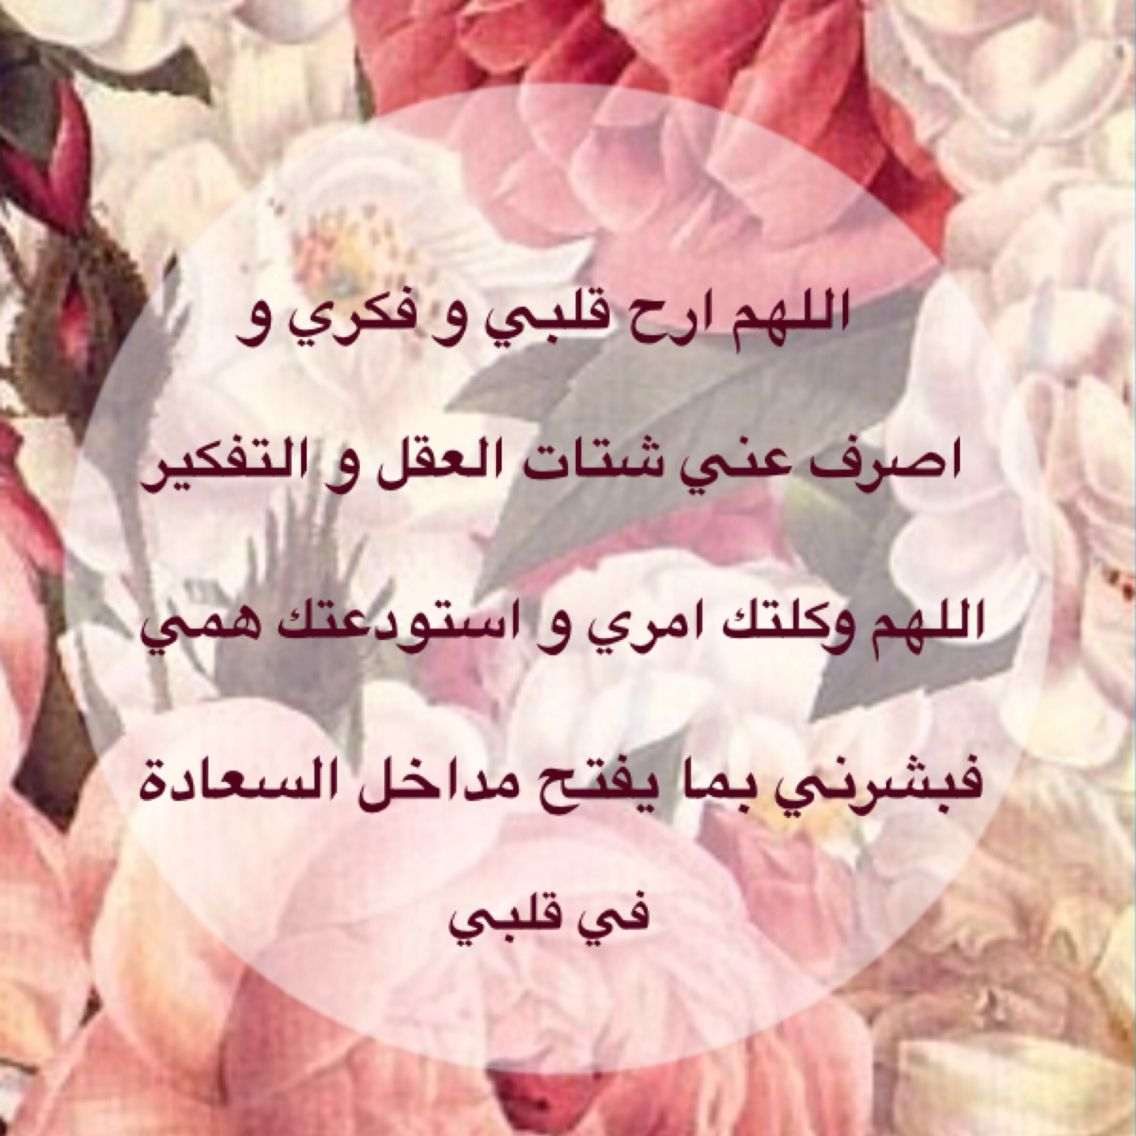 Pin By Balgees G On دعاء Funny Quotes For Instagram Funny Quotes Islam